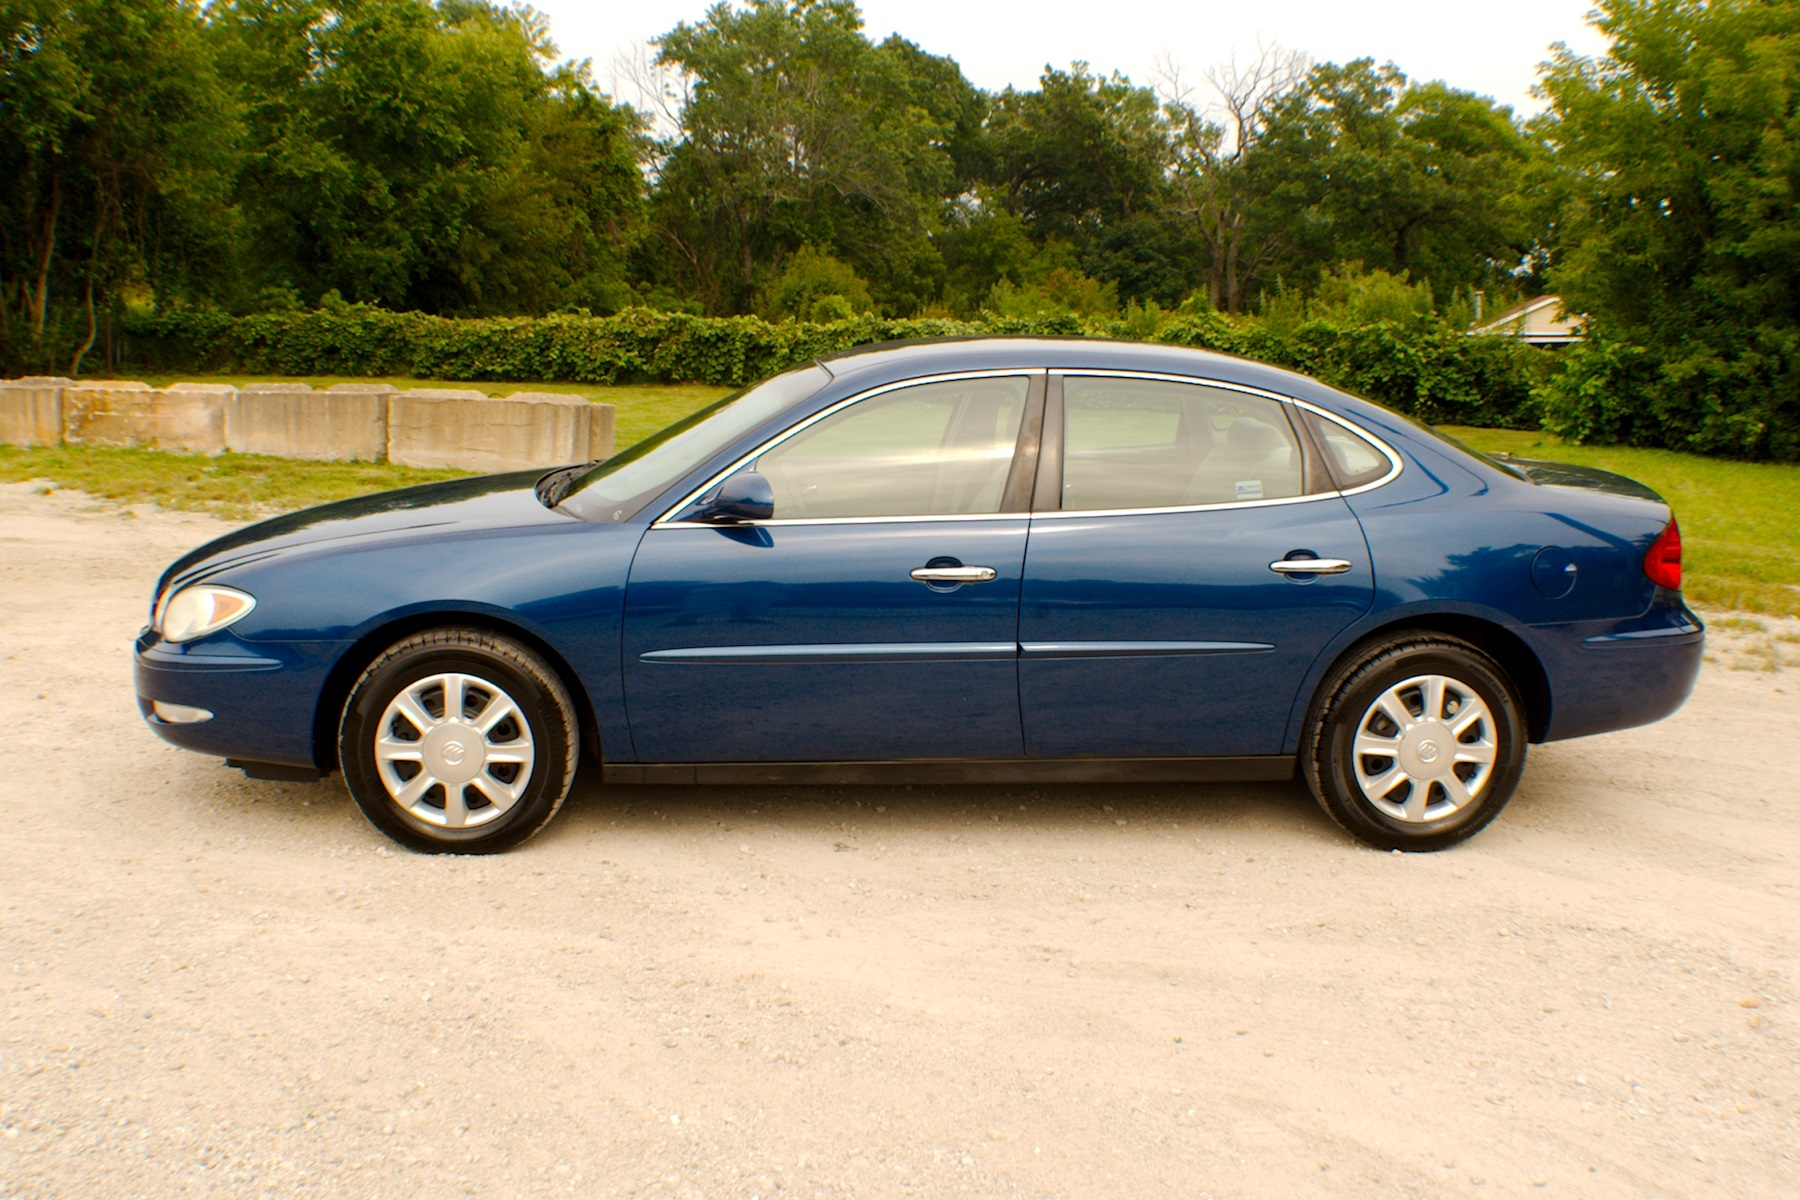 2005 Buick LeCrosse Blue Used Car Sedan Sale Antioch Zion Waukegan Lake County Illinois